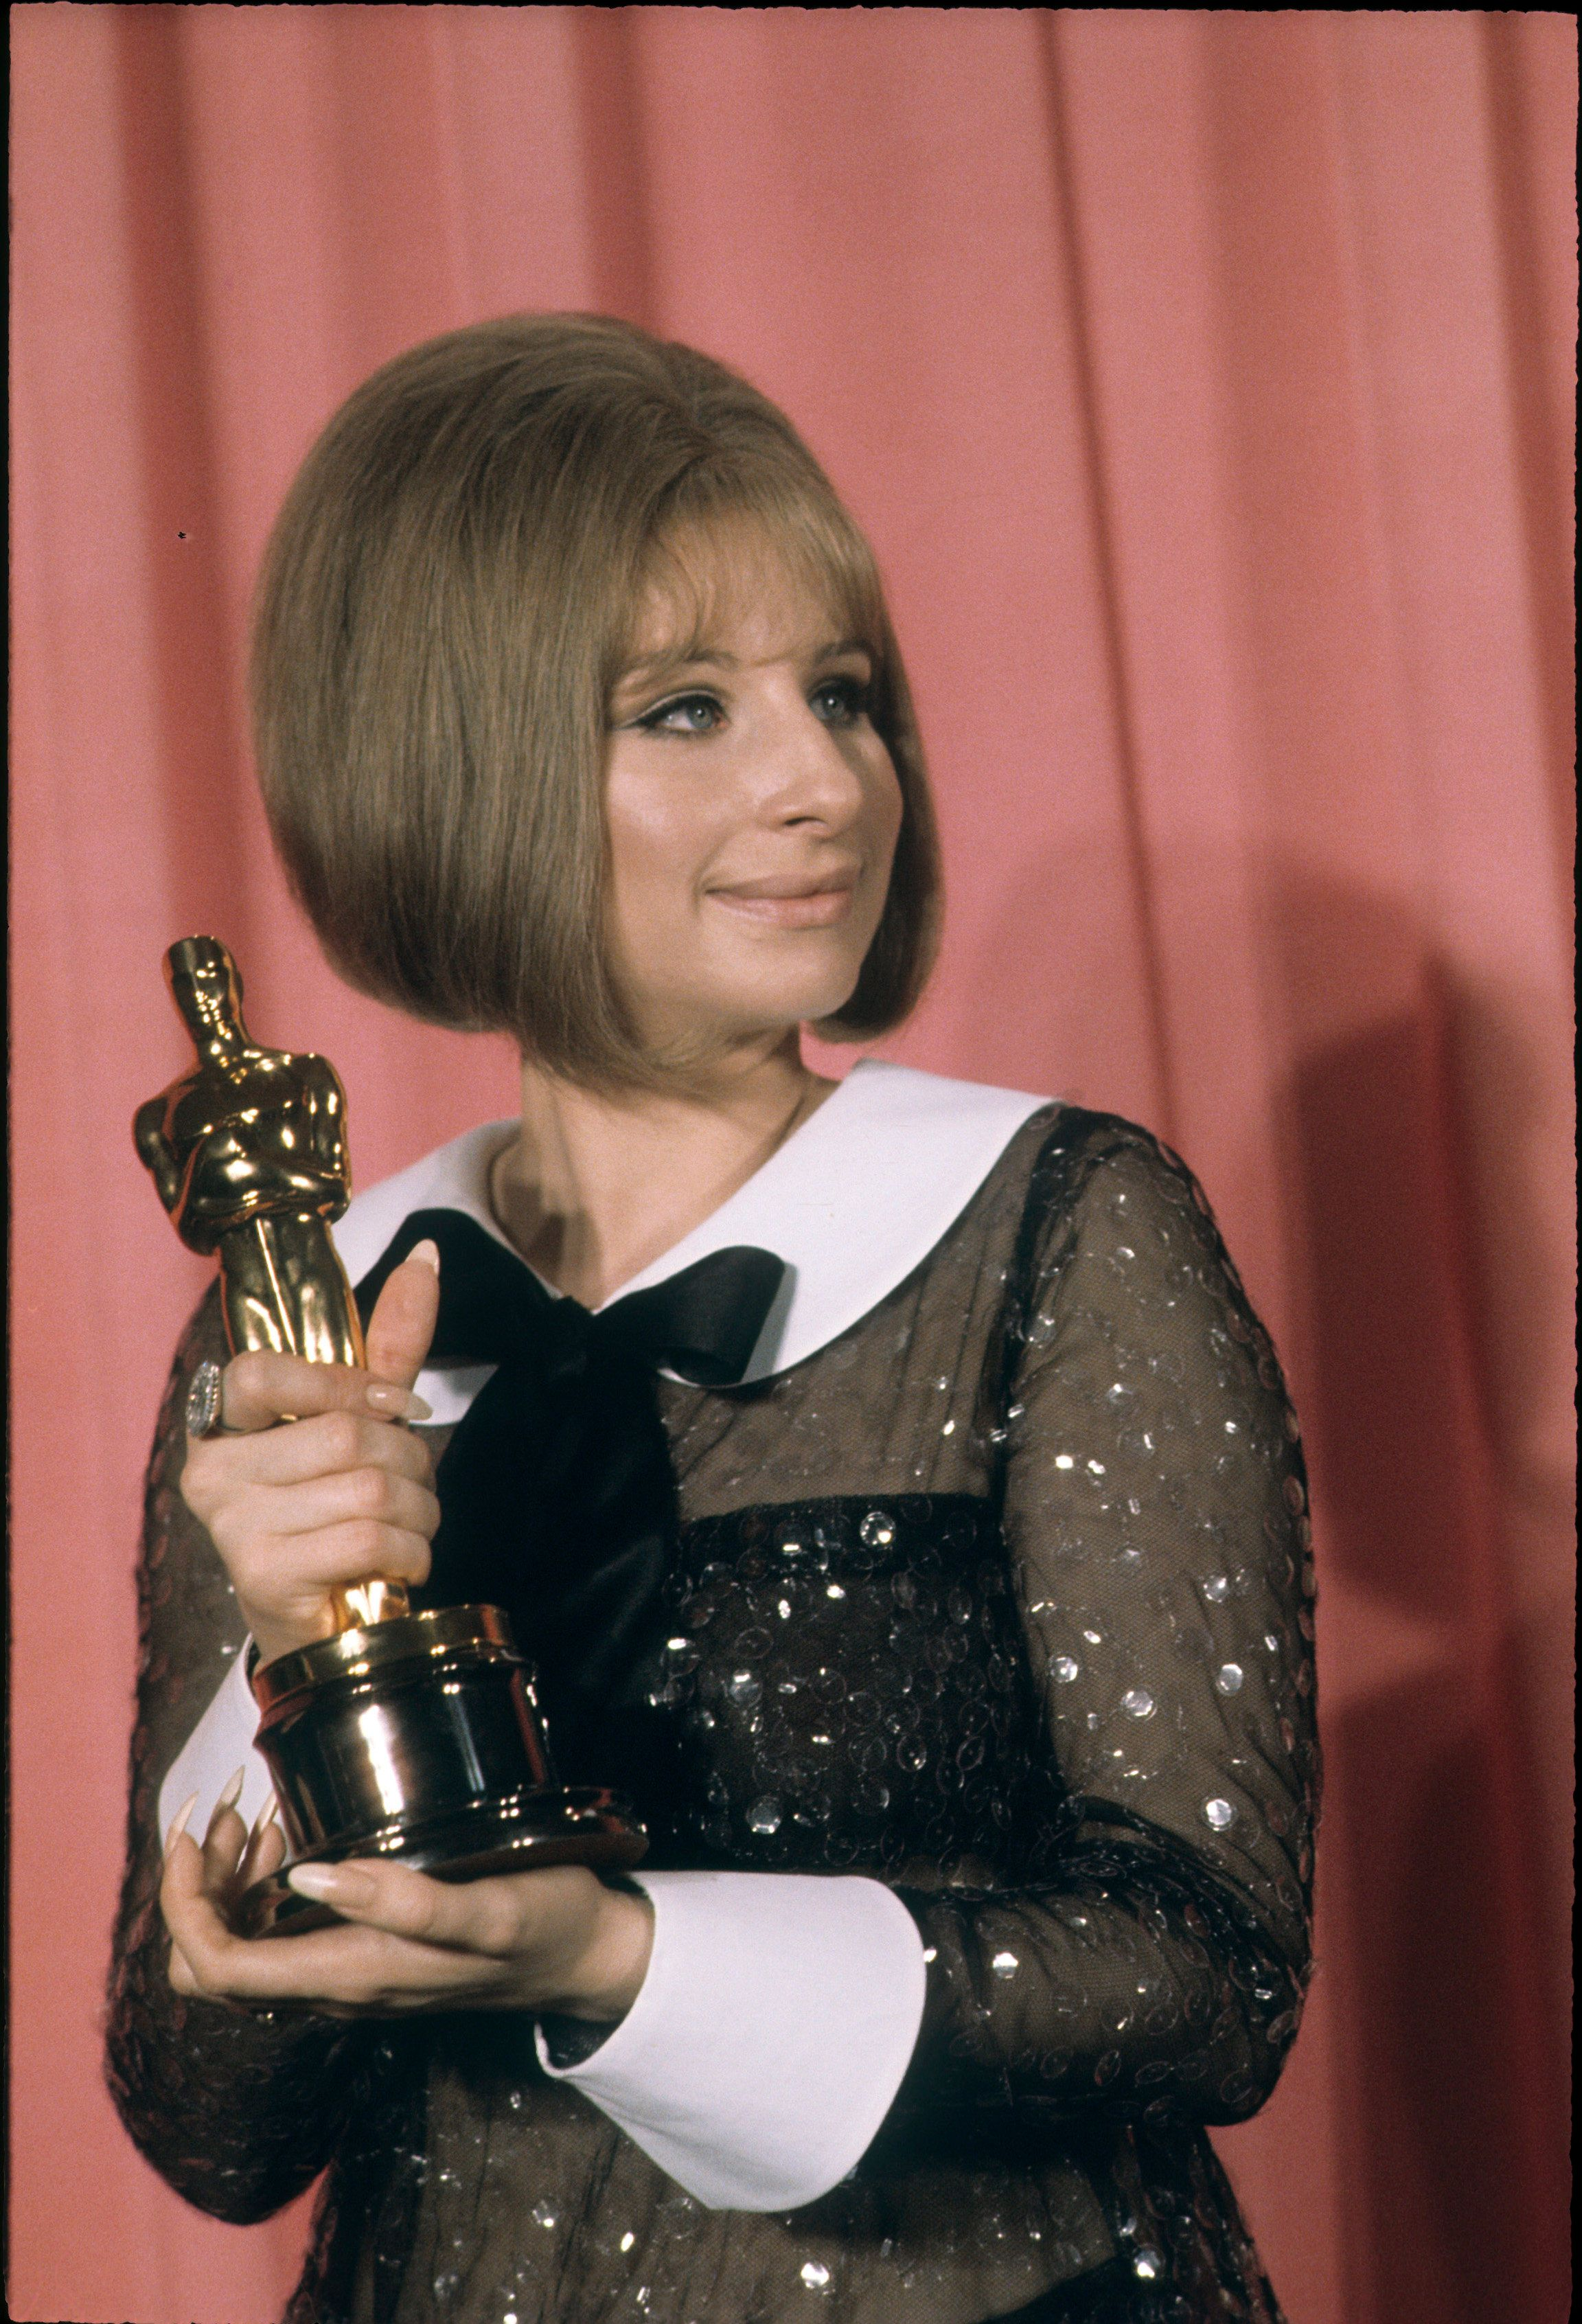 41ST ACADEMY AWARDS - Airdate: April 14, 1969. (Photo by ABC Photo Archives/ABC via Getty Images) BARBRA STREISAND, WINNER BEST ACTRESS FOR 'FUNNY GIRL'